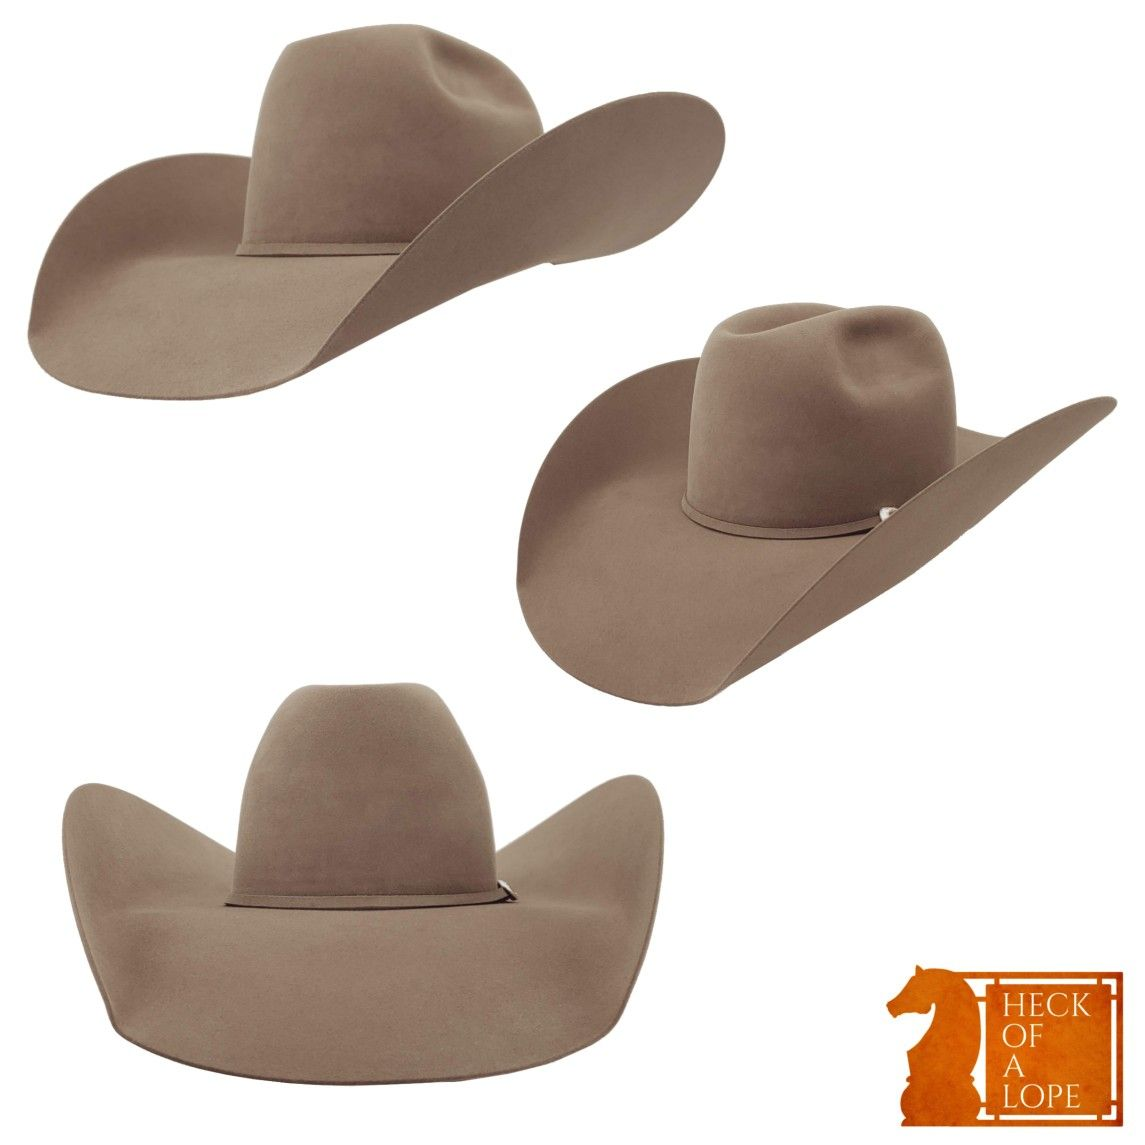 b886c7ddd236e 💥All New💥 Atwood Hat Company Pecan Felt Hat! This Super Hot🌡️Color Is  Selling Out Fast! 🔷Available In 4 1 4